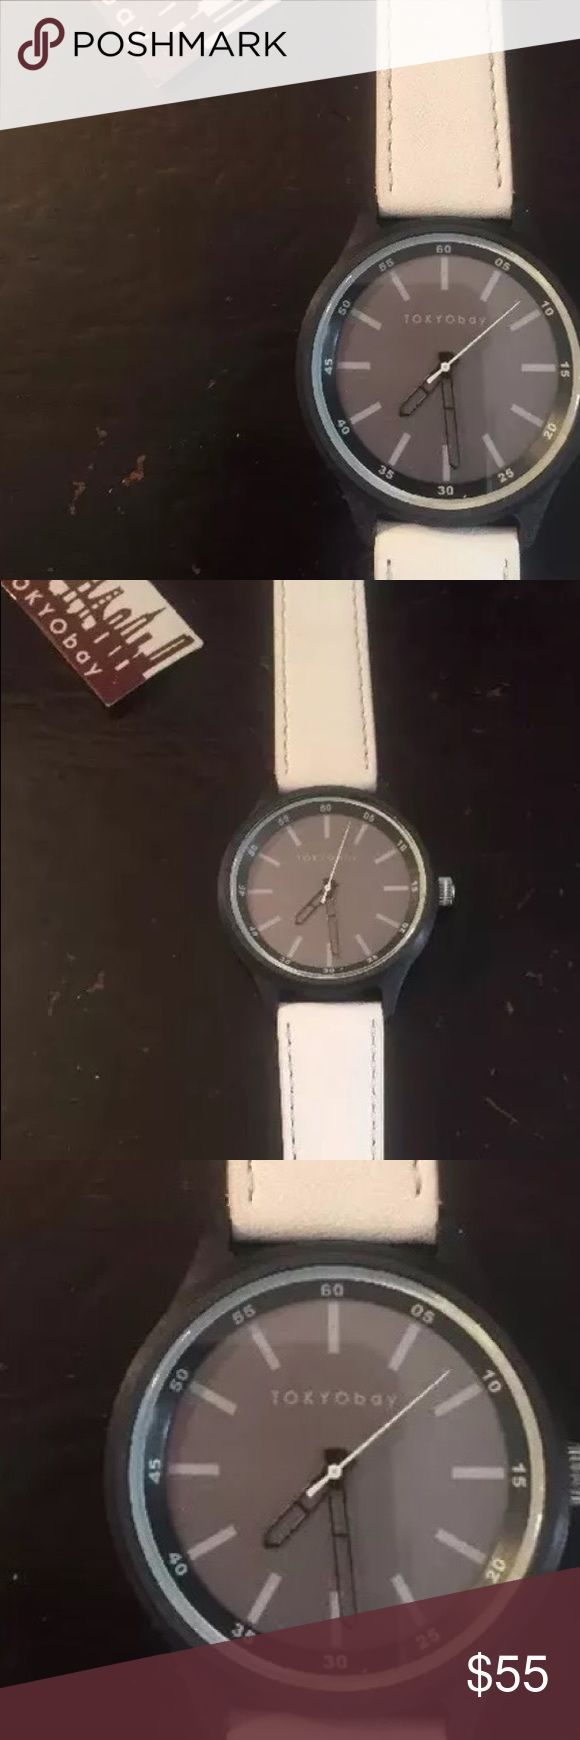 Tokyo Bay Unisex Leather Watch, NWT, $110 Tokyo Bay Unisex Watch, White Leather, Quartz (Battery), NWT, Might need a new battery Tokyo Bay Accessories Watches